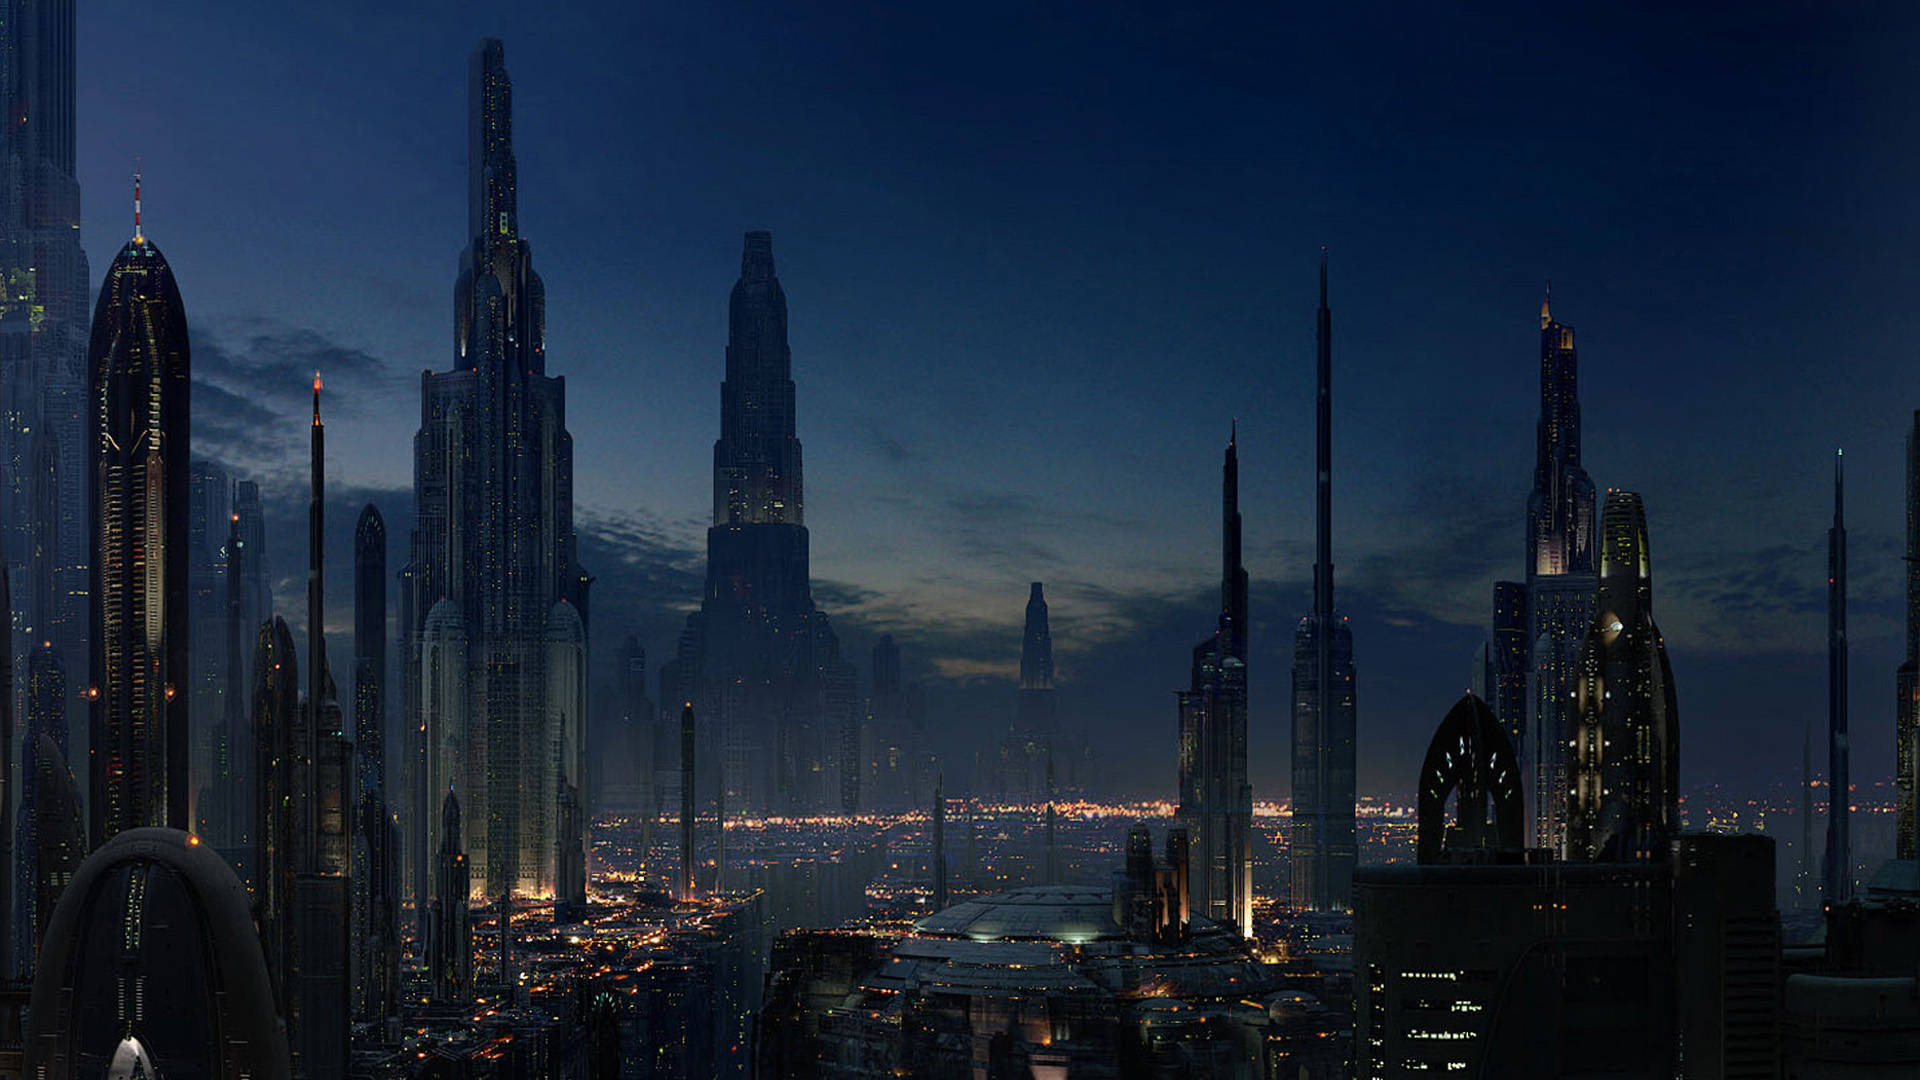 Coruscant city at night wallpaper city wallpaper 1920x1080